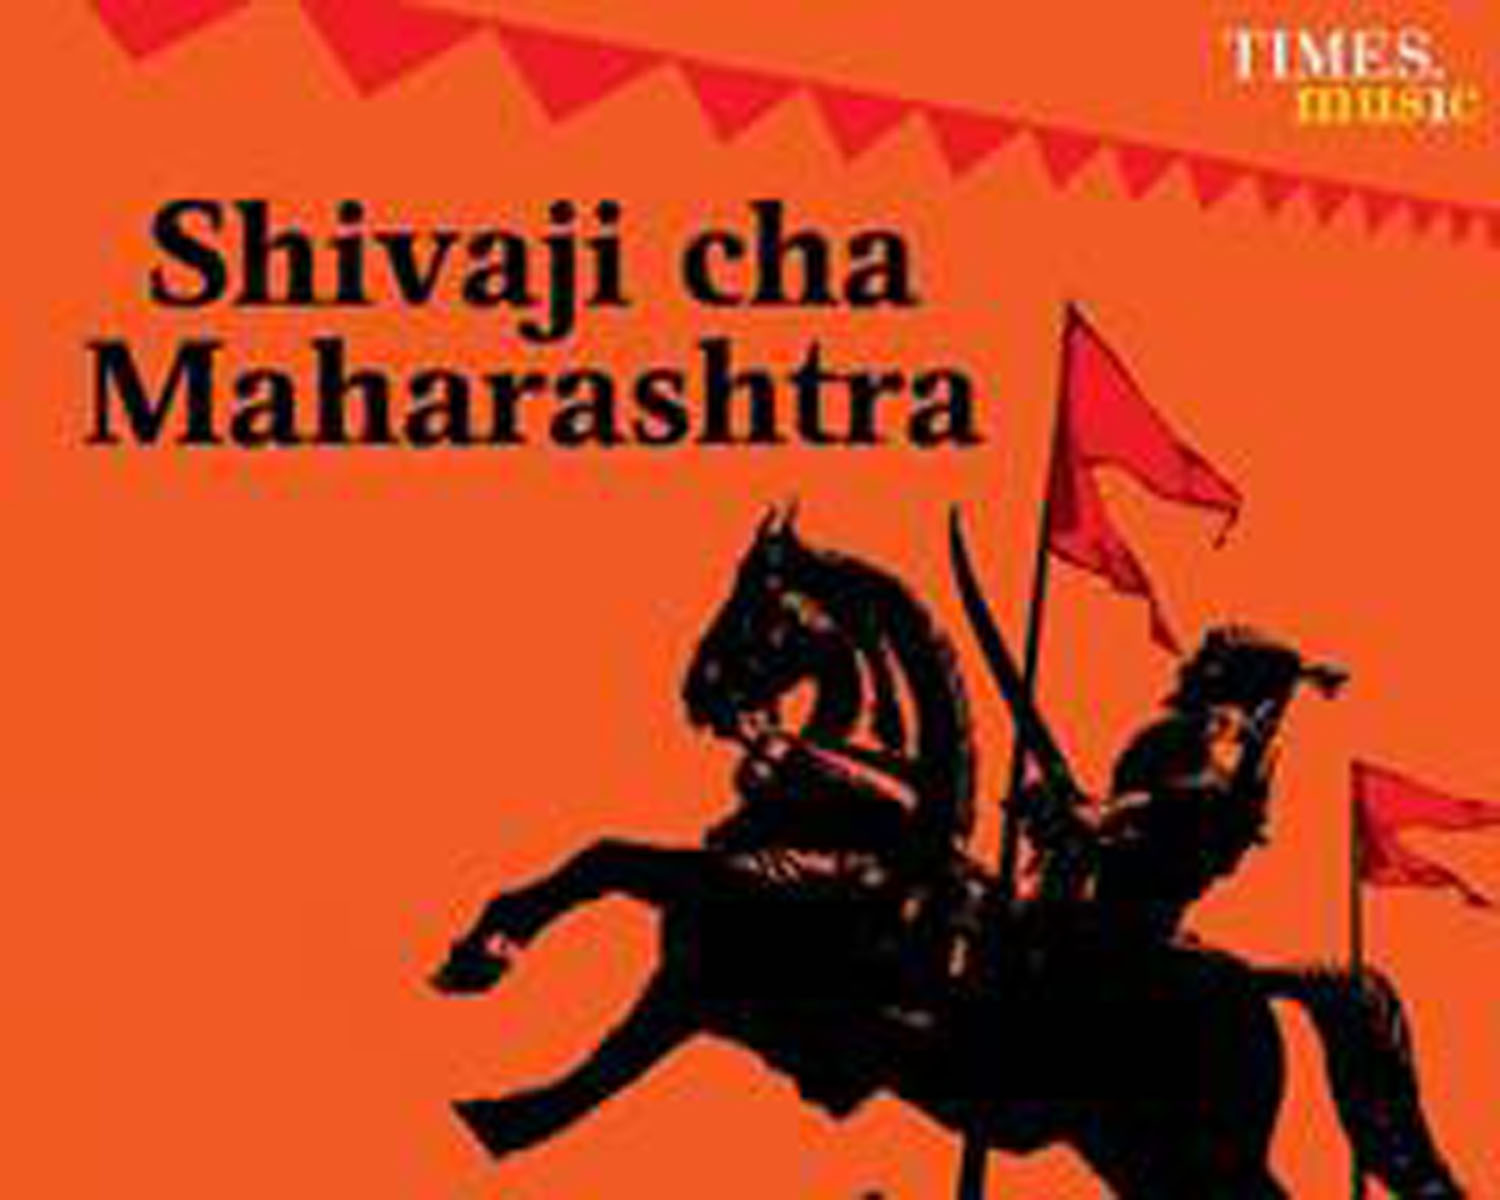 Shivaji cha Maharashtra Marathi Mp3 songs download ~ all